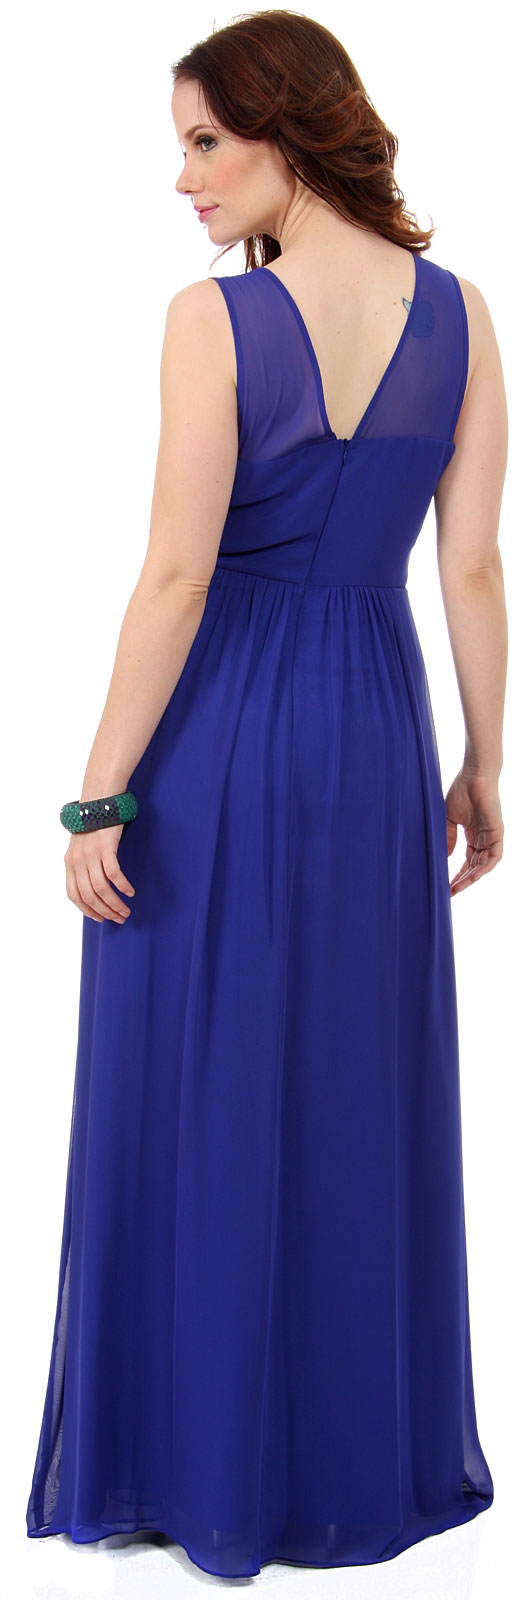 Image of Semi Sheer Top Chiffon Long Formal Bridesmaid Dress back in Royal Blue